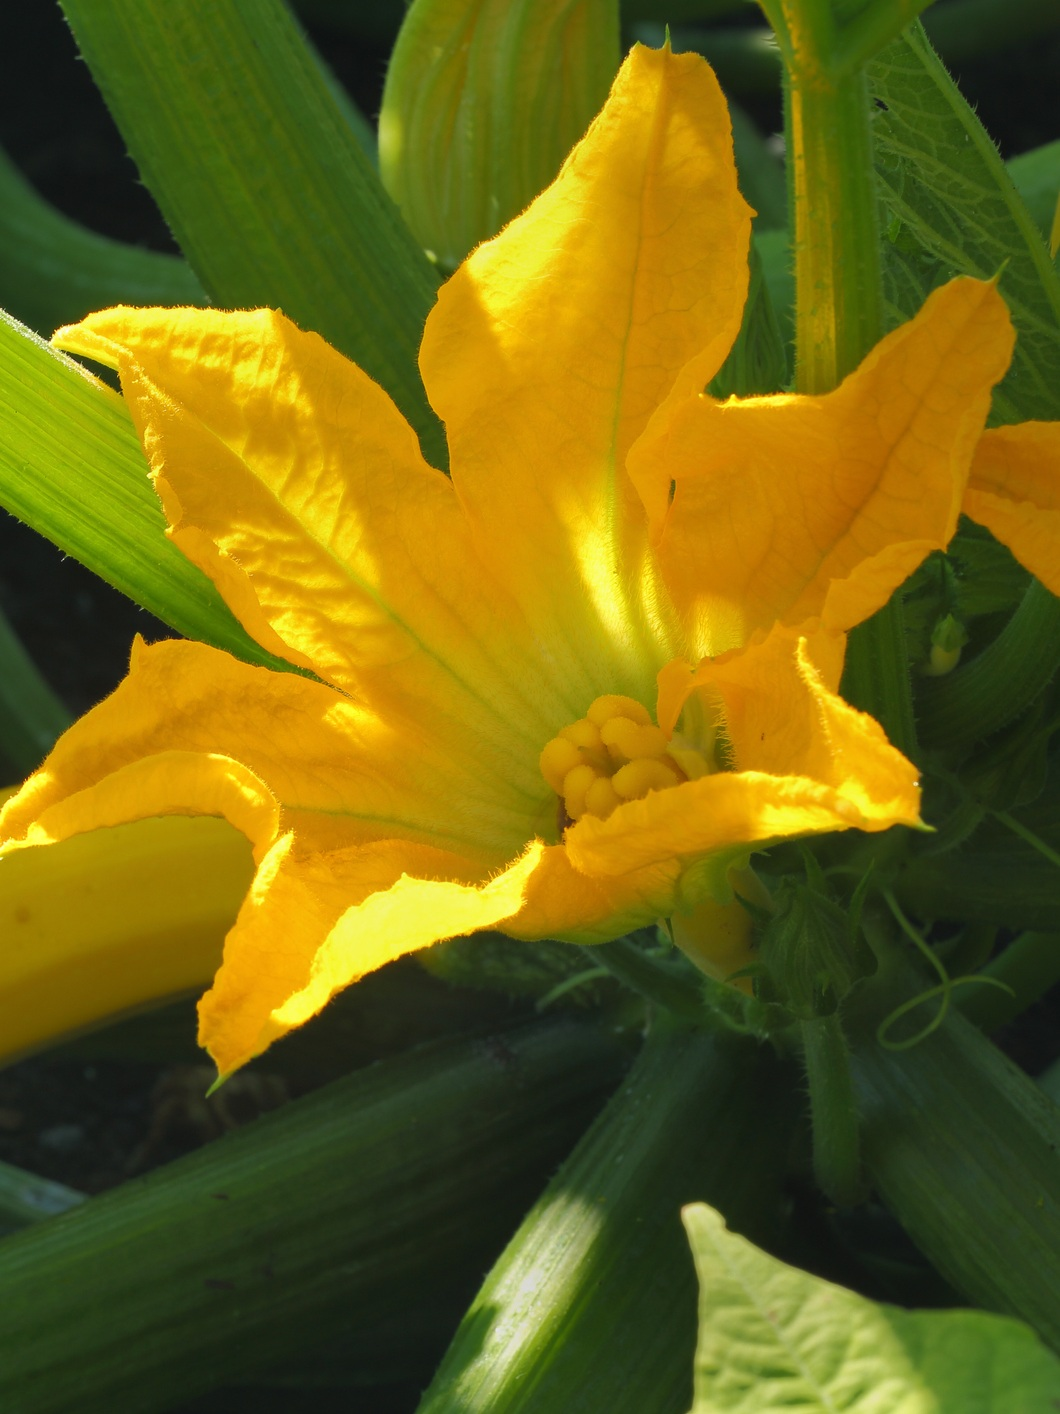 "Squash Blossom - Many of us have grown squash but did you know their flowers are edible too?Both summer and winter squash have edible flowers and both the male and female flowers can be eaten. This truly is the plant that keeps on giving.When harvesting the flowers be sure to leave enough of the female flowers to have fruit. Look closely before picking and you should see a small squash forming under the female flowers.Squash plants are easy to grow from seed or transplants. Full sun and consistent water is needed, but the plants do not want to be wet. It's best to mound the plants, 12""-18"" above soil line for better drainage and air circulation for vines.Squash blossoms are great fried, stuffed with cheese and baked, added to pasta dishes and quesadillas."